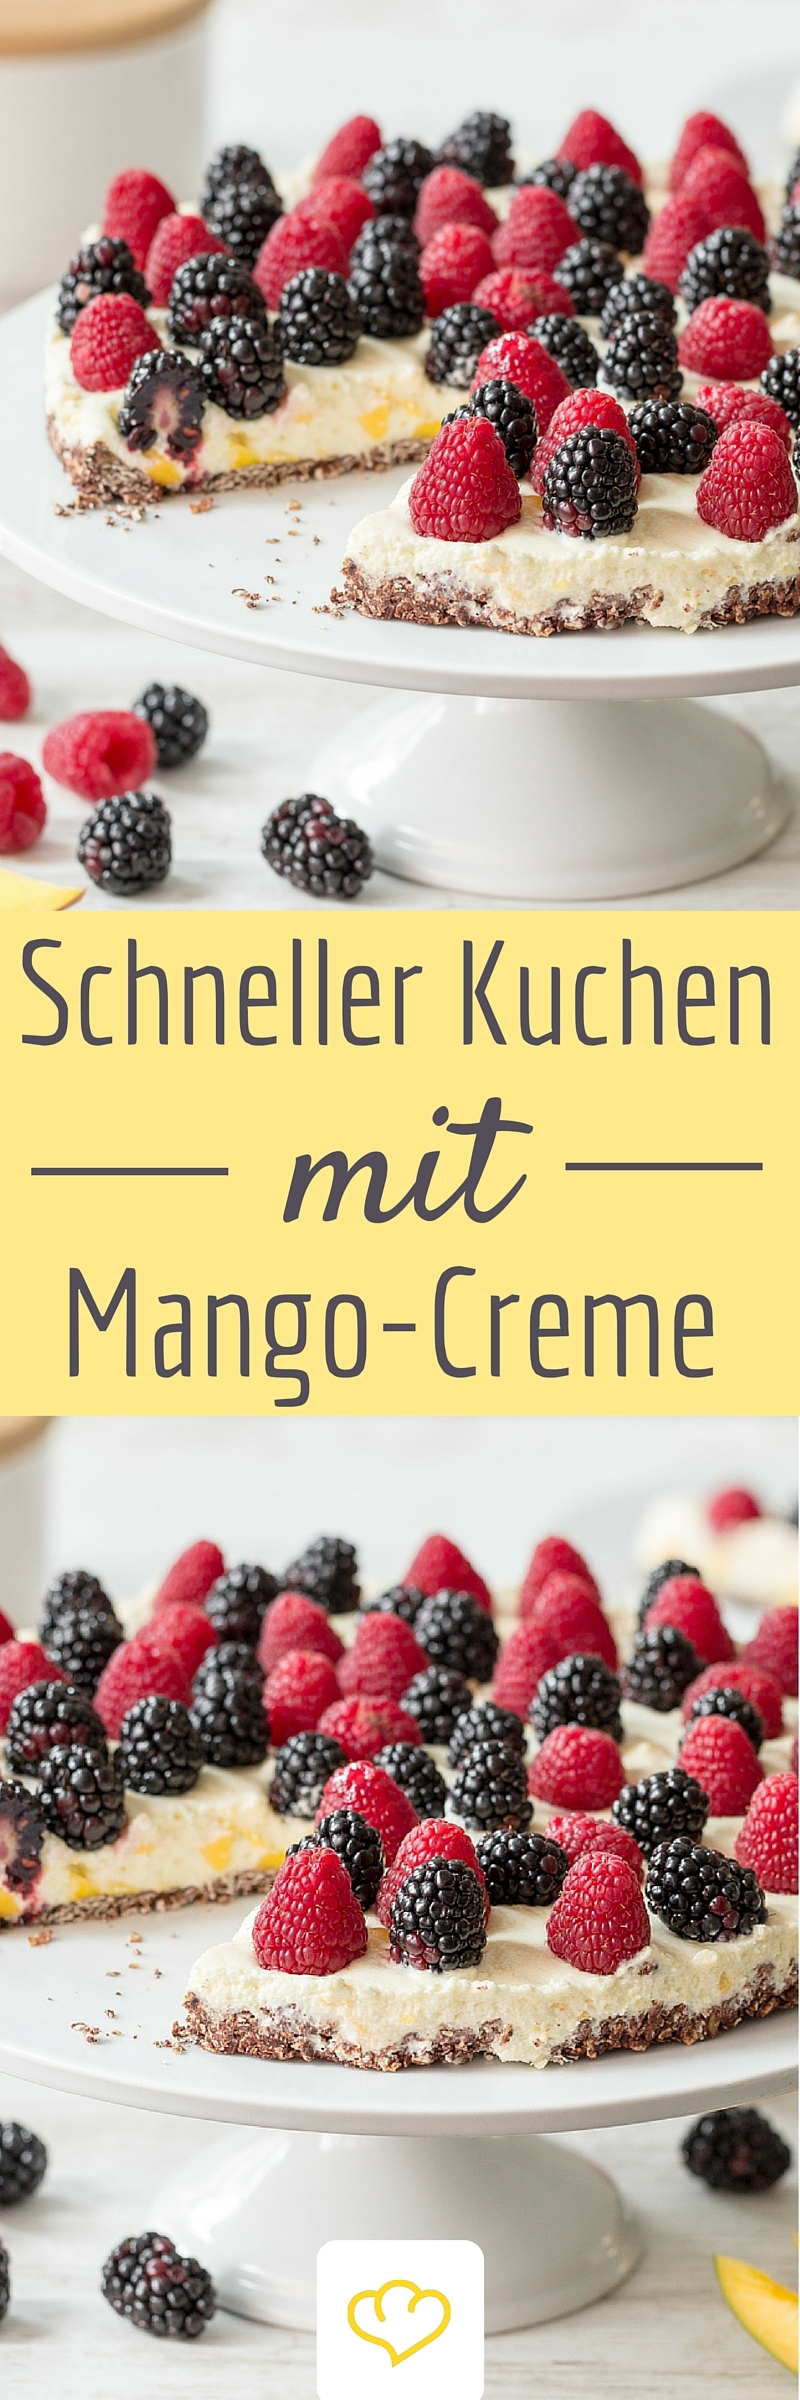 schneller kuchen mit mango creme ohne backen rezept cake etc pinterest kuchen backen. Black Bedroom Furniture Sets. Home Design Ideas